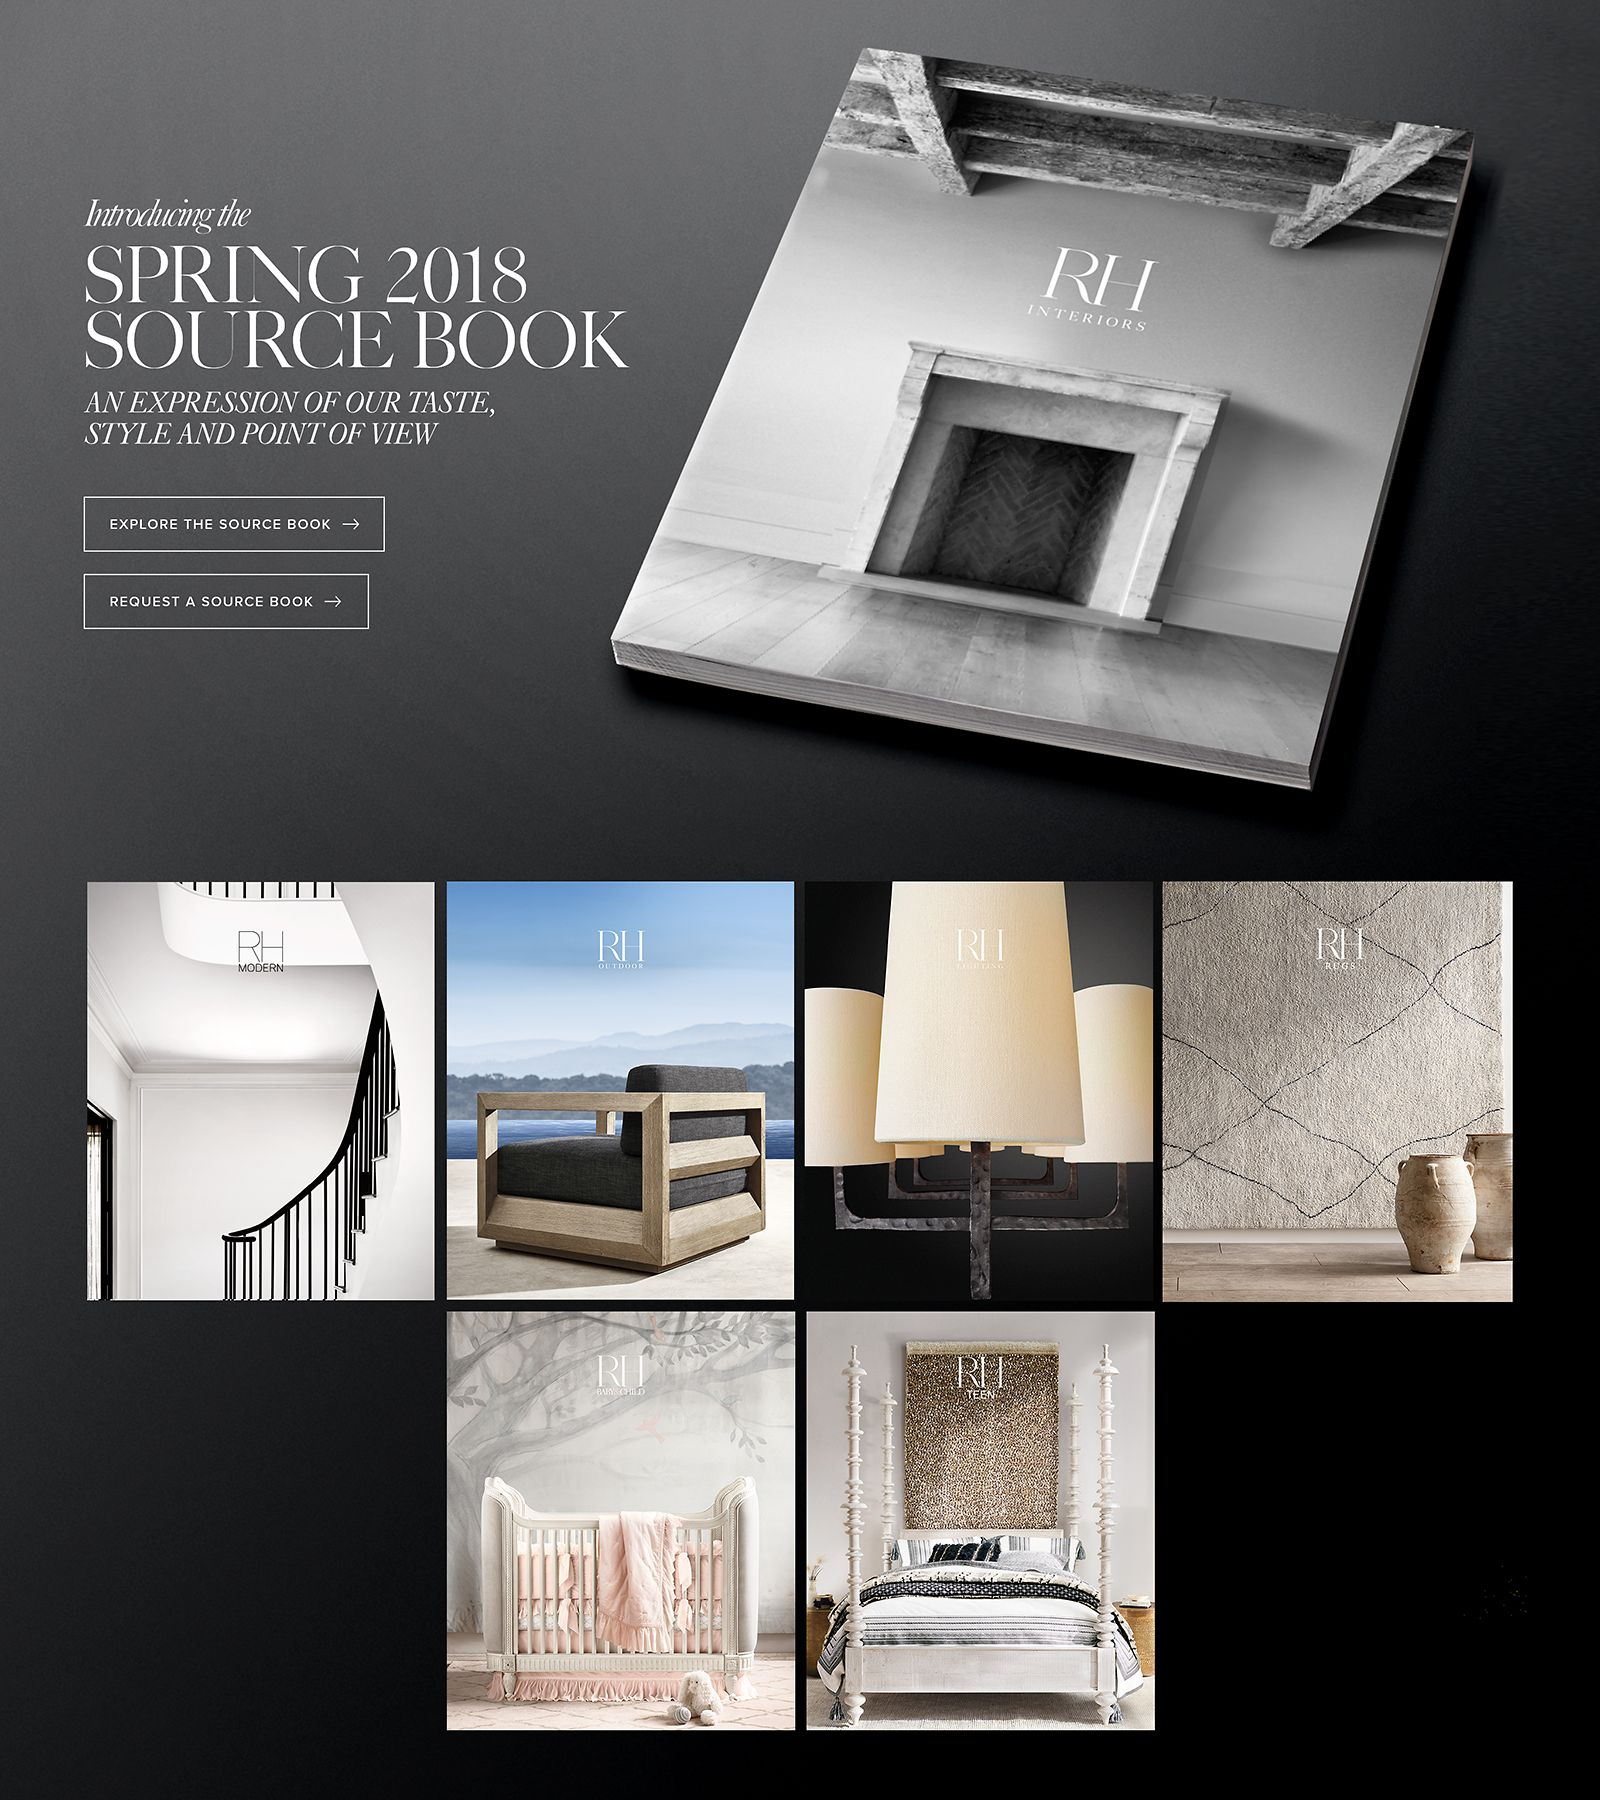 Introducing the Spring 2018 Source Book. An expression of our taste, style and point of view.